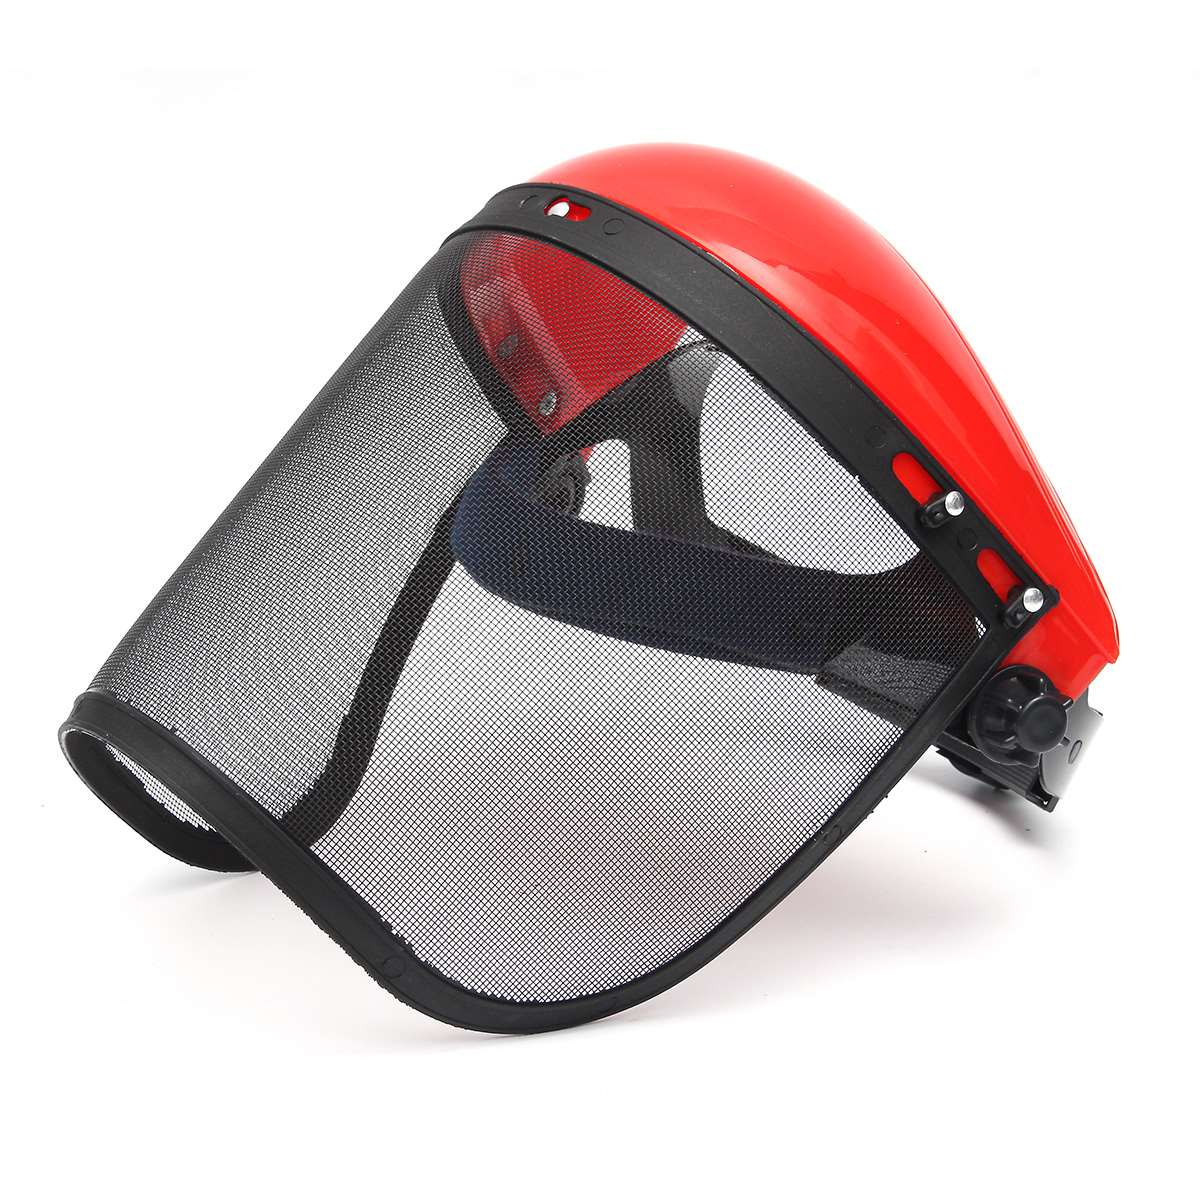 Clear + Mesh Full Visor Flip Up Face Shield Screen Safety Mask Eye Protector Protective Mask Workwear chainsaw safety helmet w visor face protector hat eye protection free shipping outdoor brushcutter guard trimmer shield